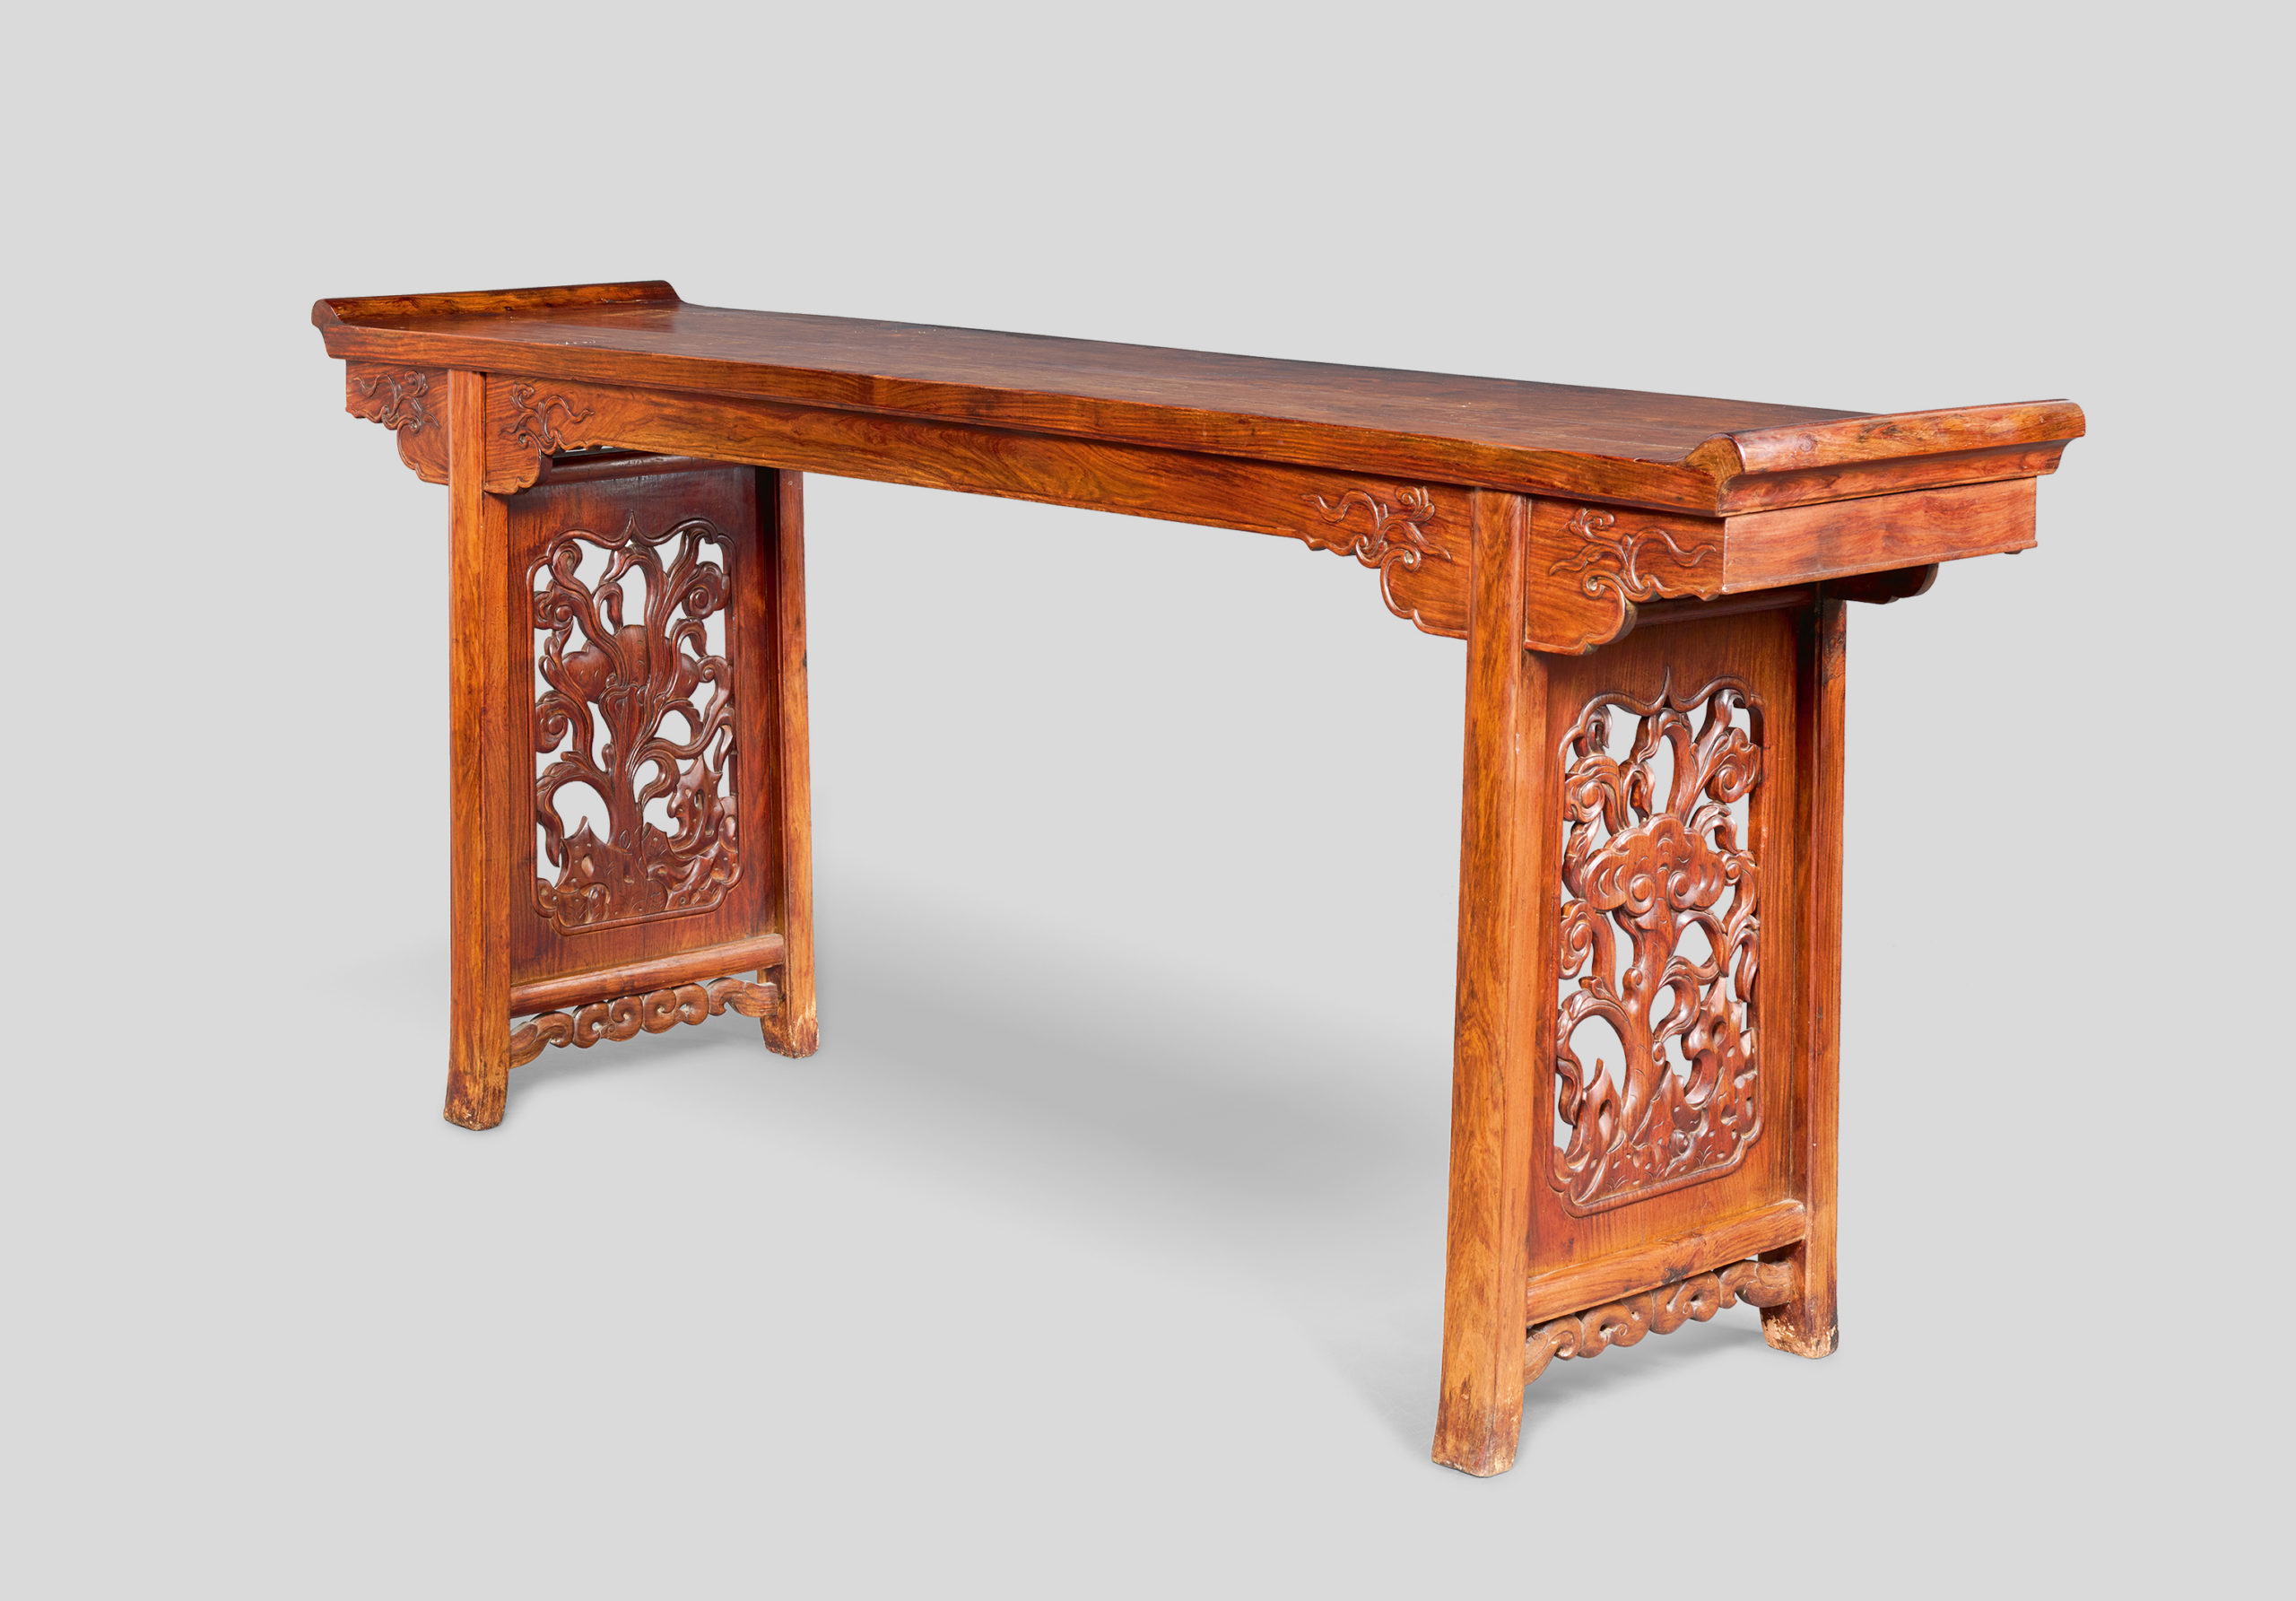 A HUANGHUALI ALTAR TABLE, QIAOTOUAN, 17TH CENTURY, 203 by 47.5 by 90 cm